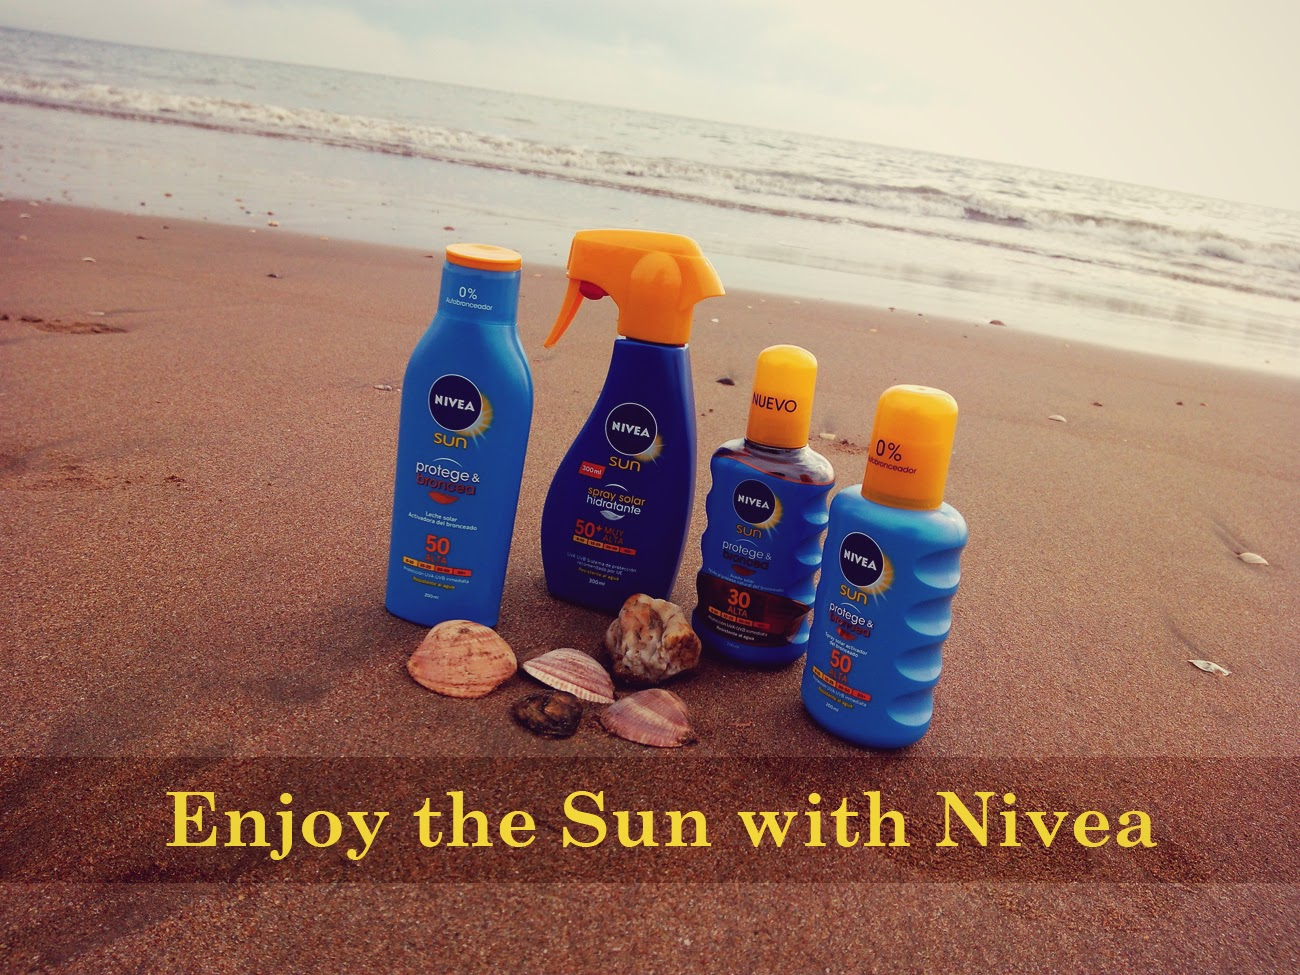 Enjoy-the-sun-with-nivea